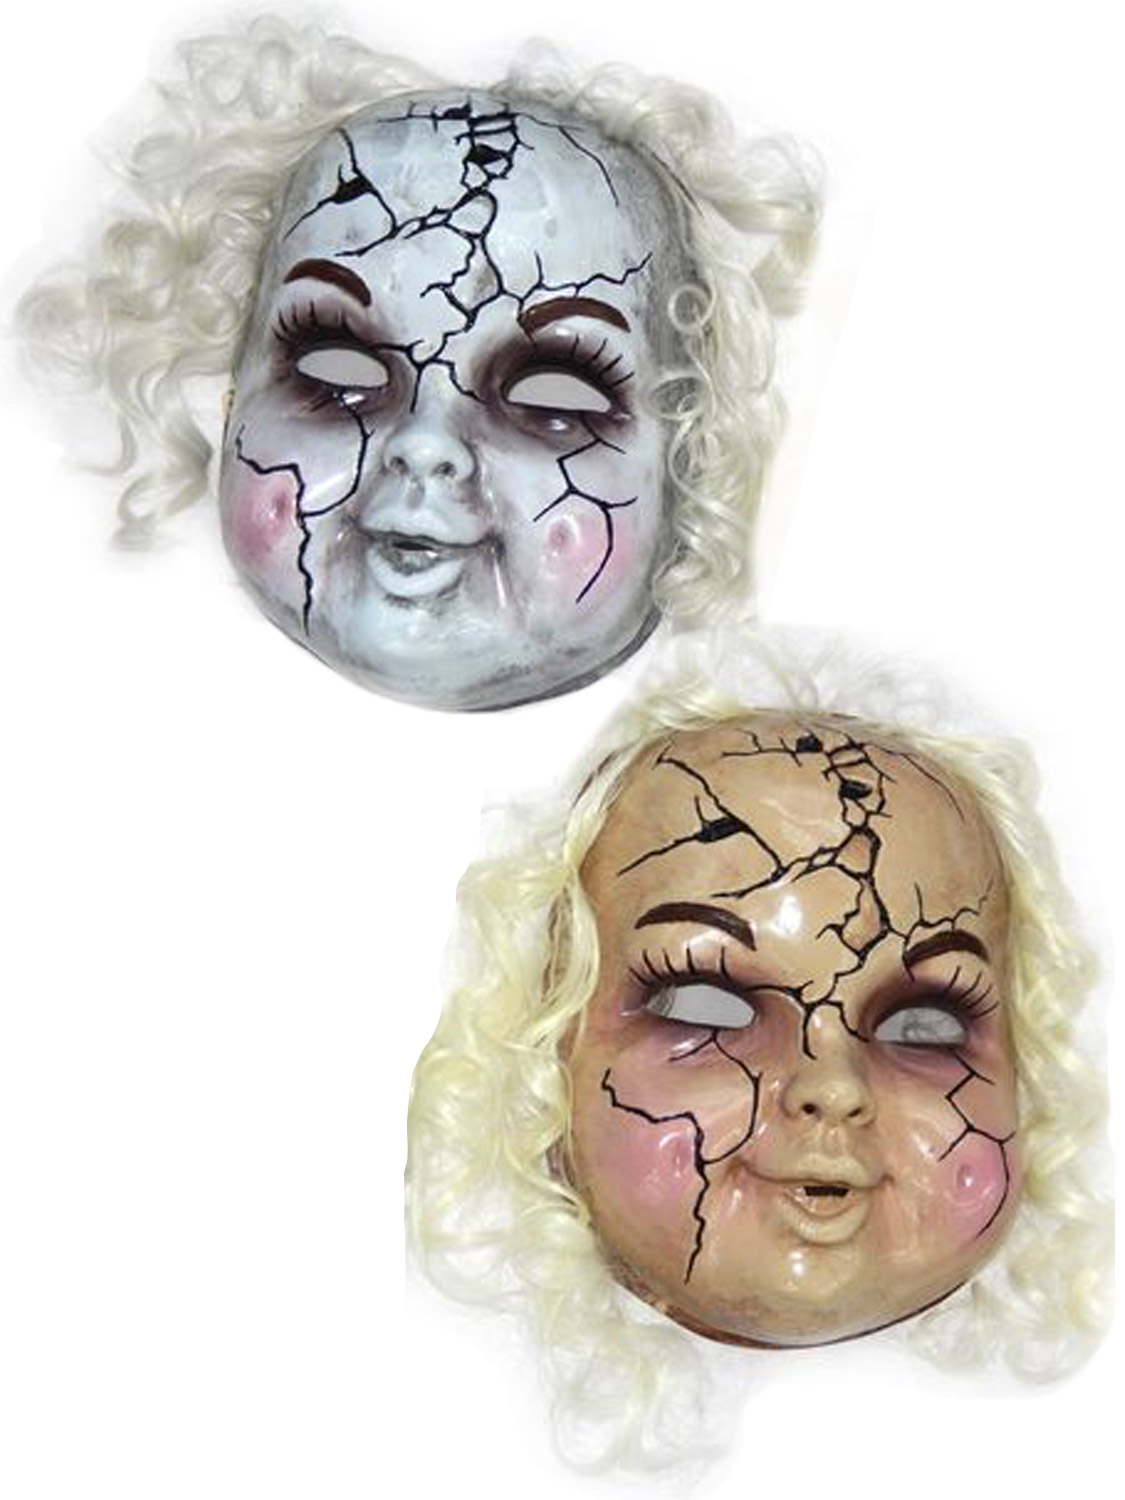 Adult size Plastic Broken Porcelain Doll Mask Creepy Doll Costume Accessory